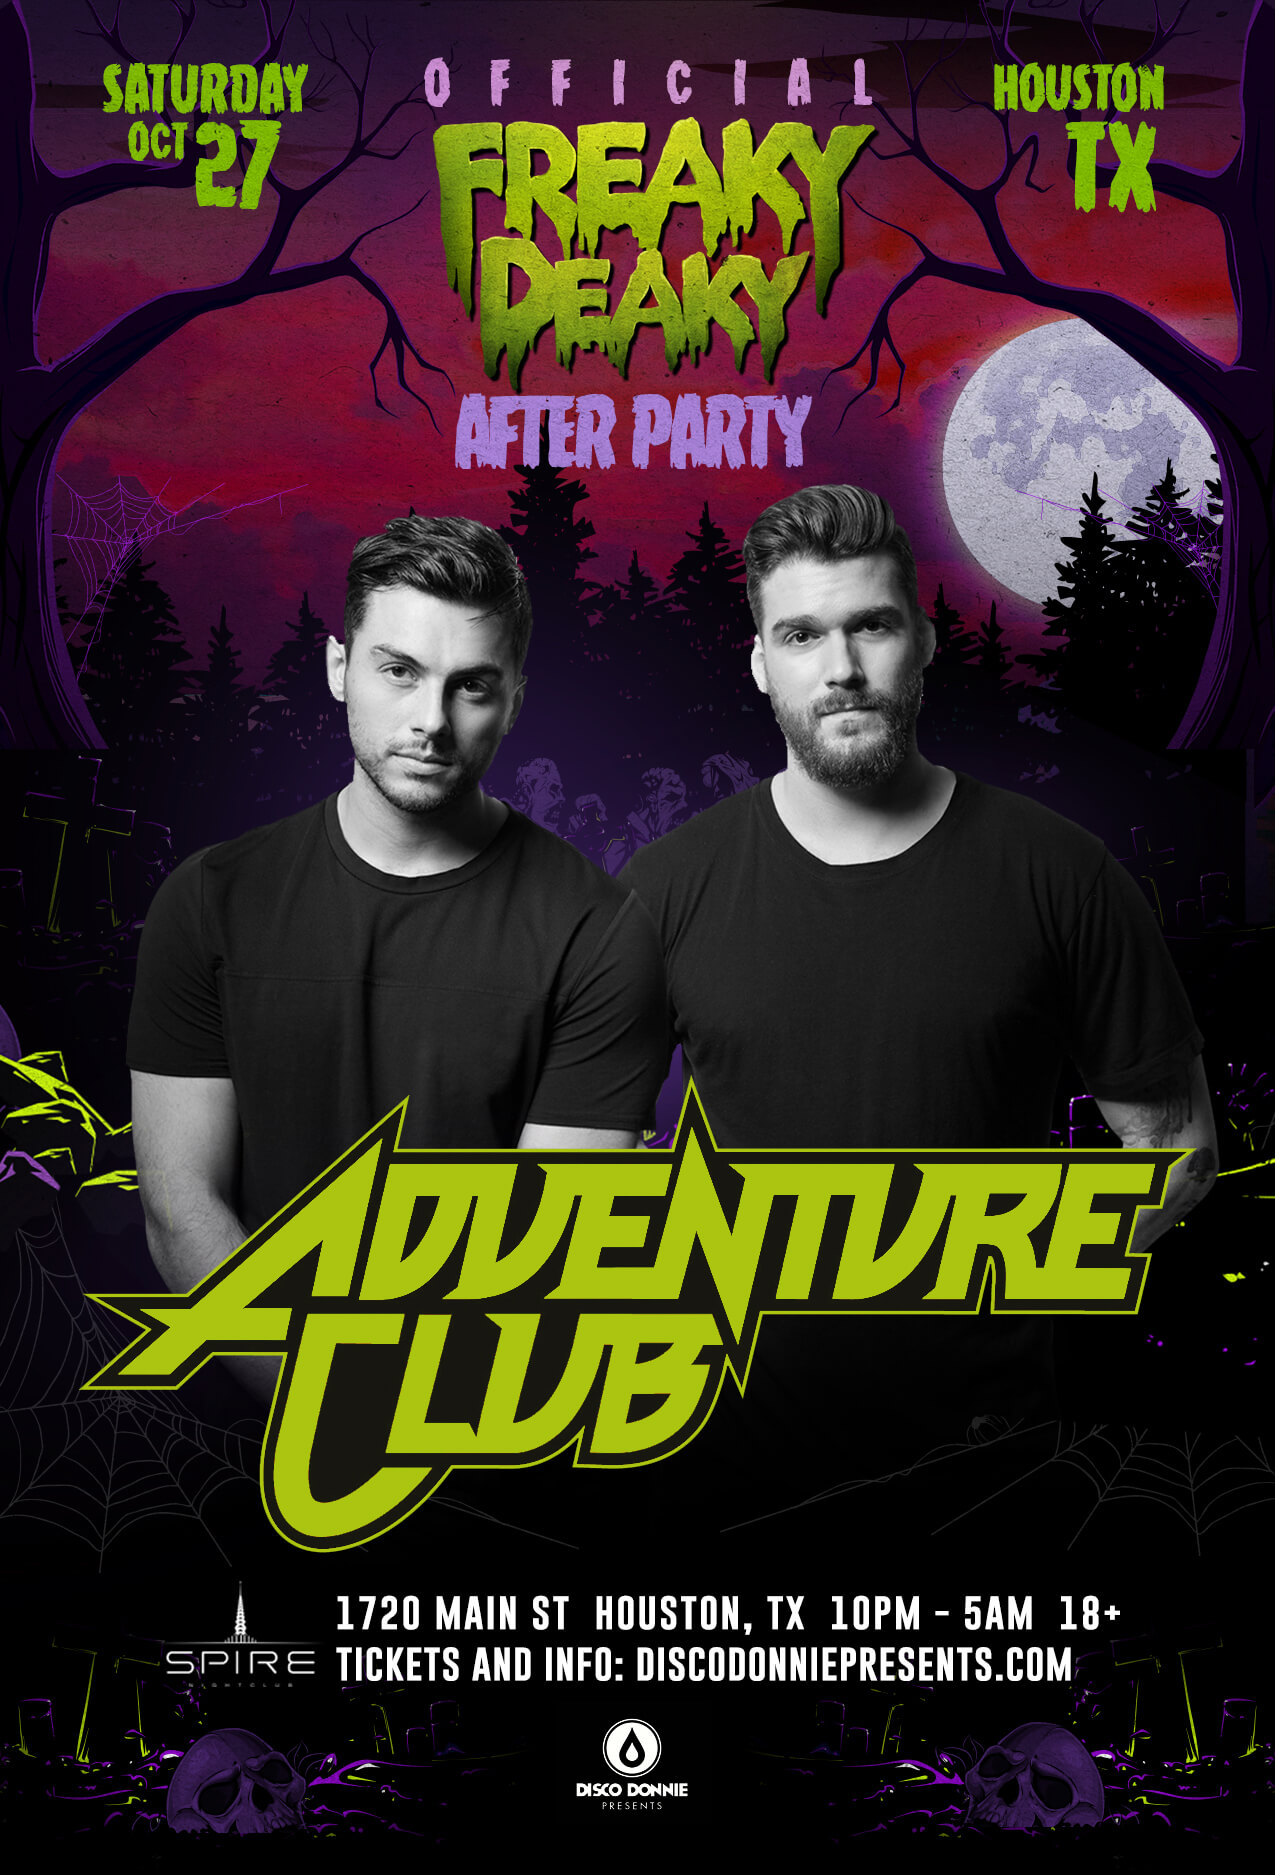 afterparty with adventure club on saturday